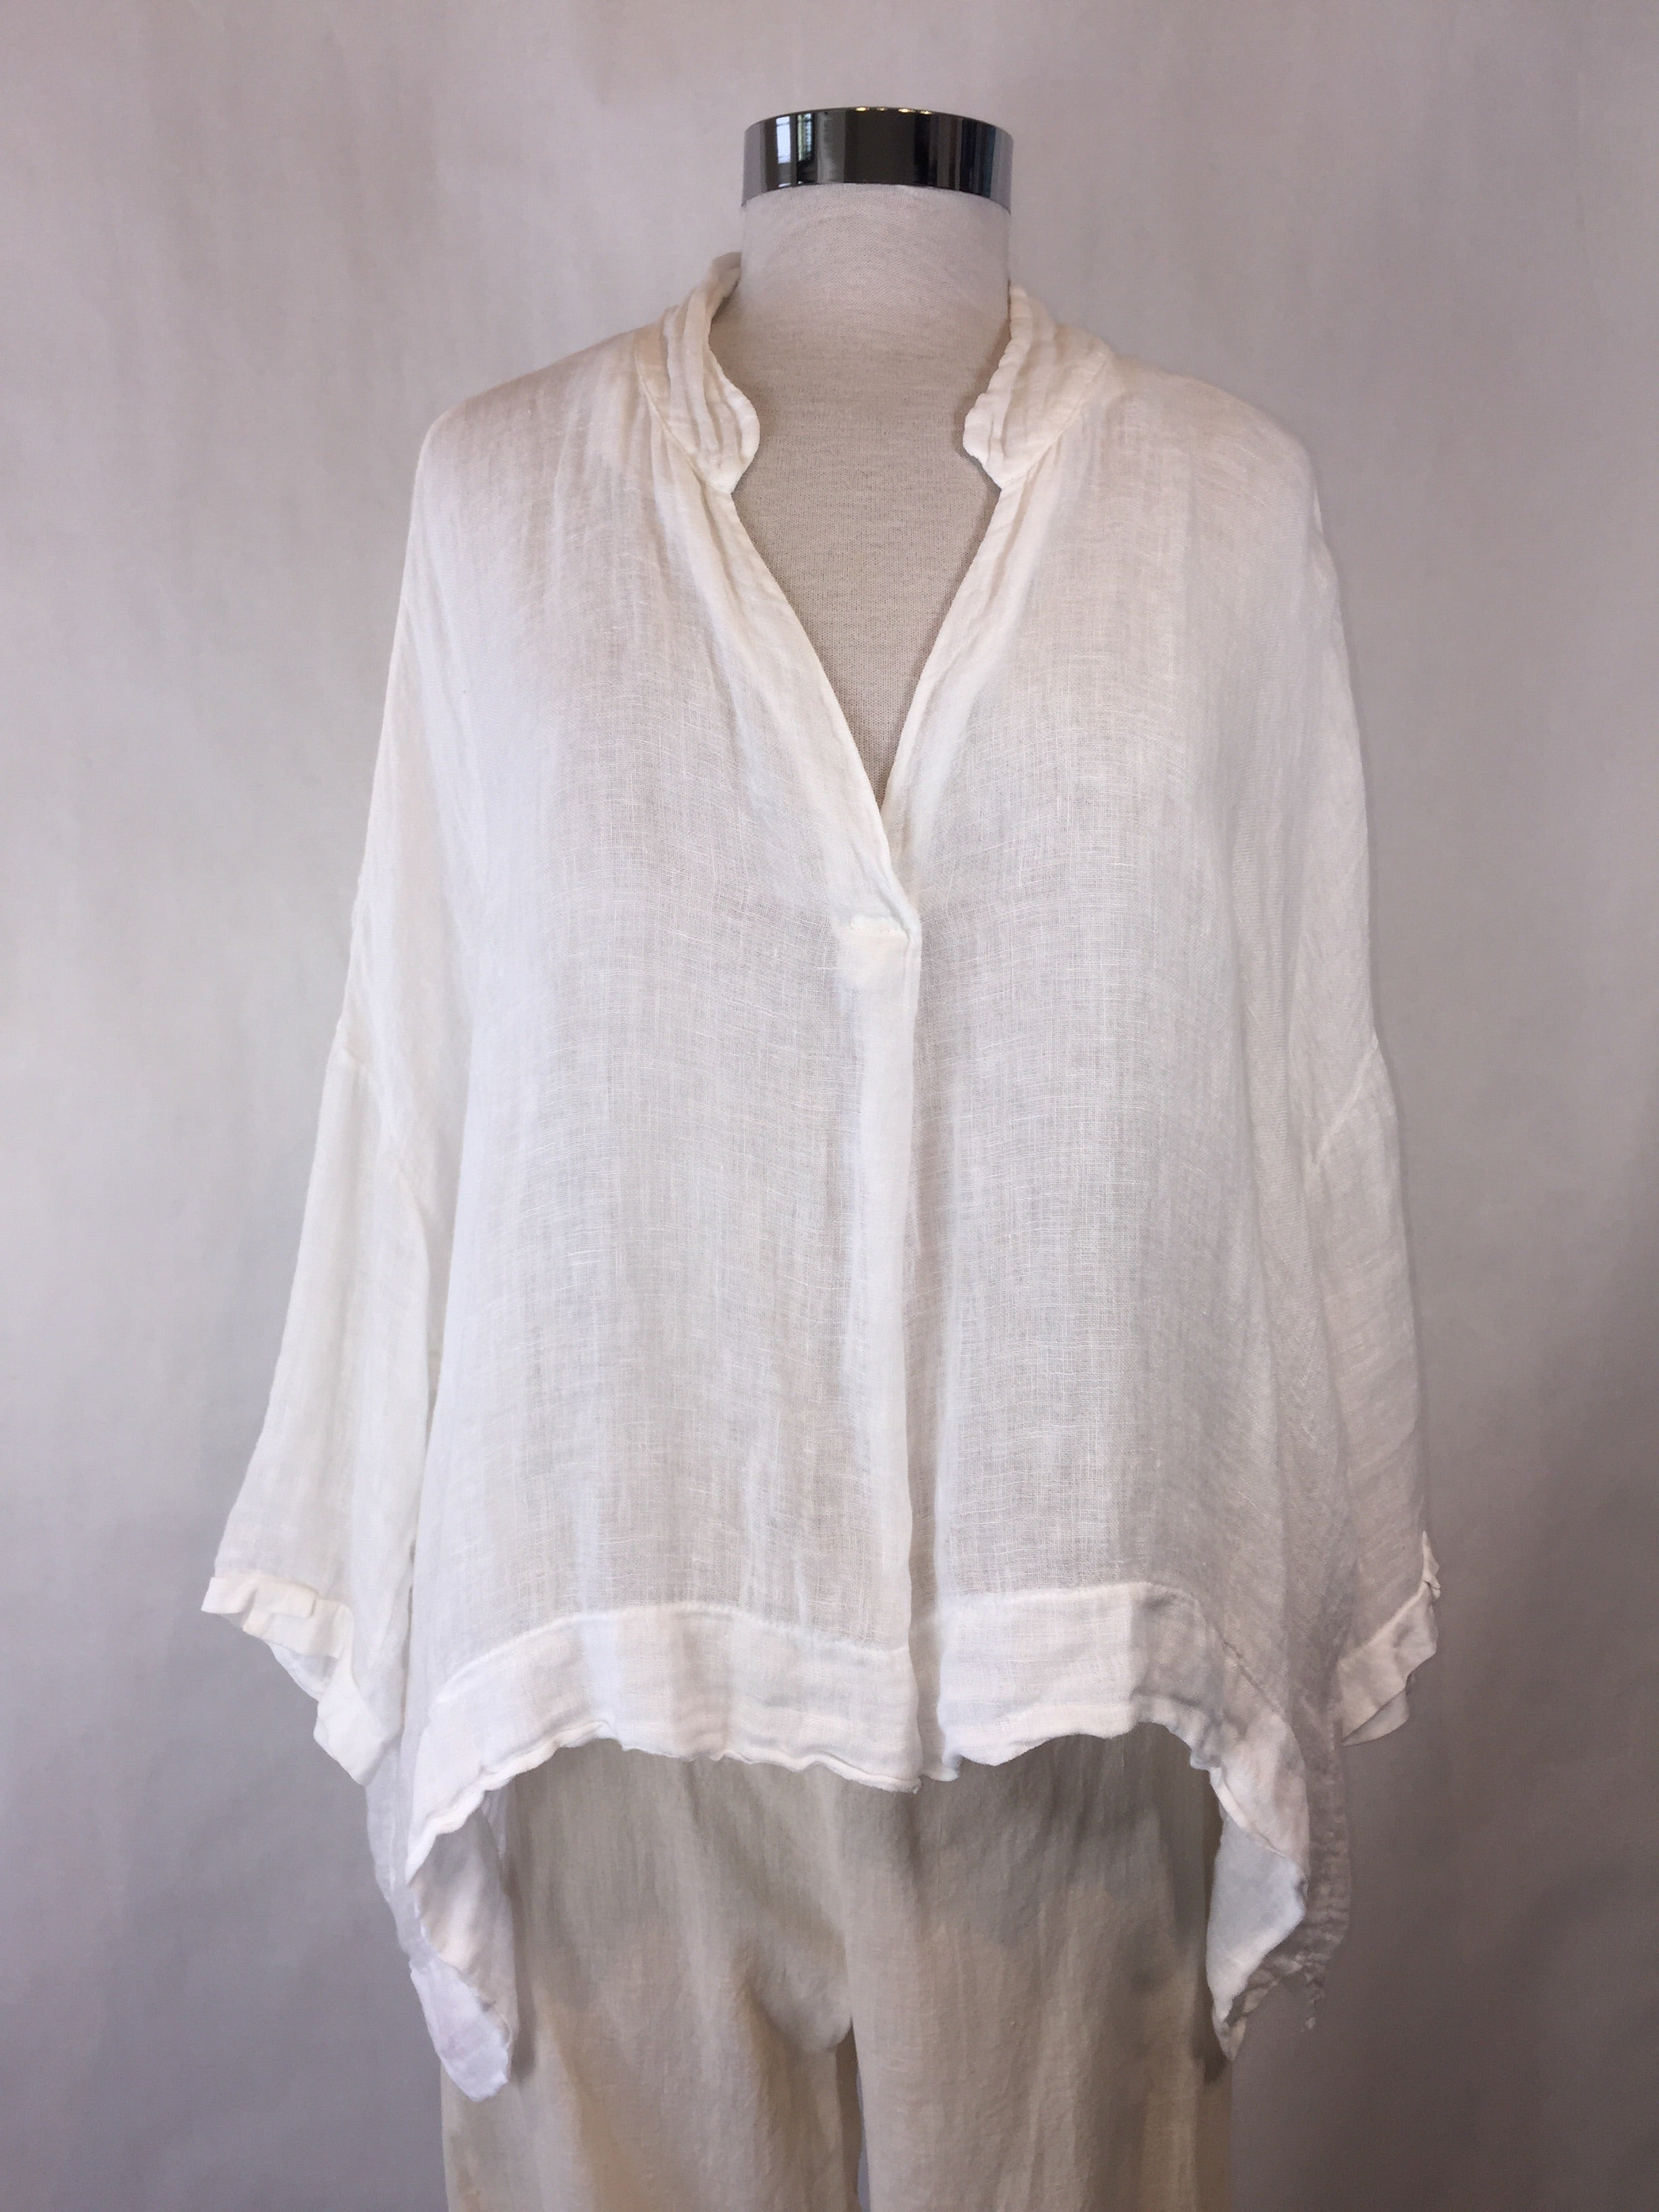 50% OFF - Linen Boxy Top